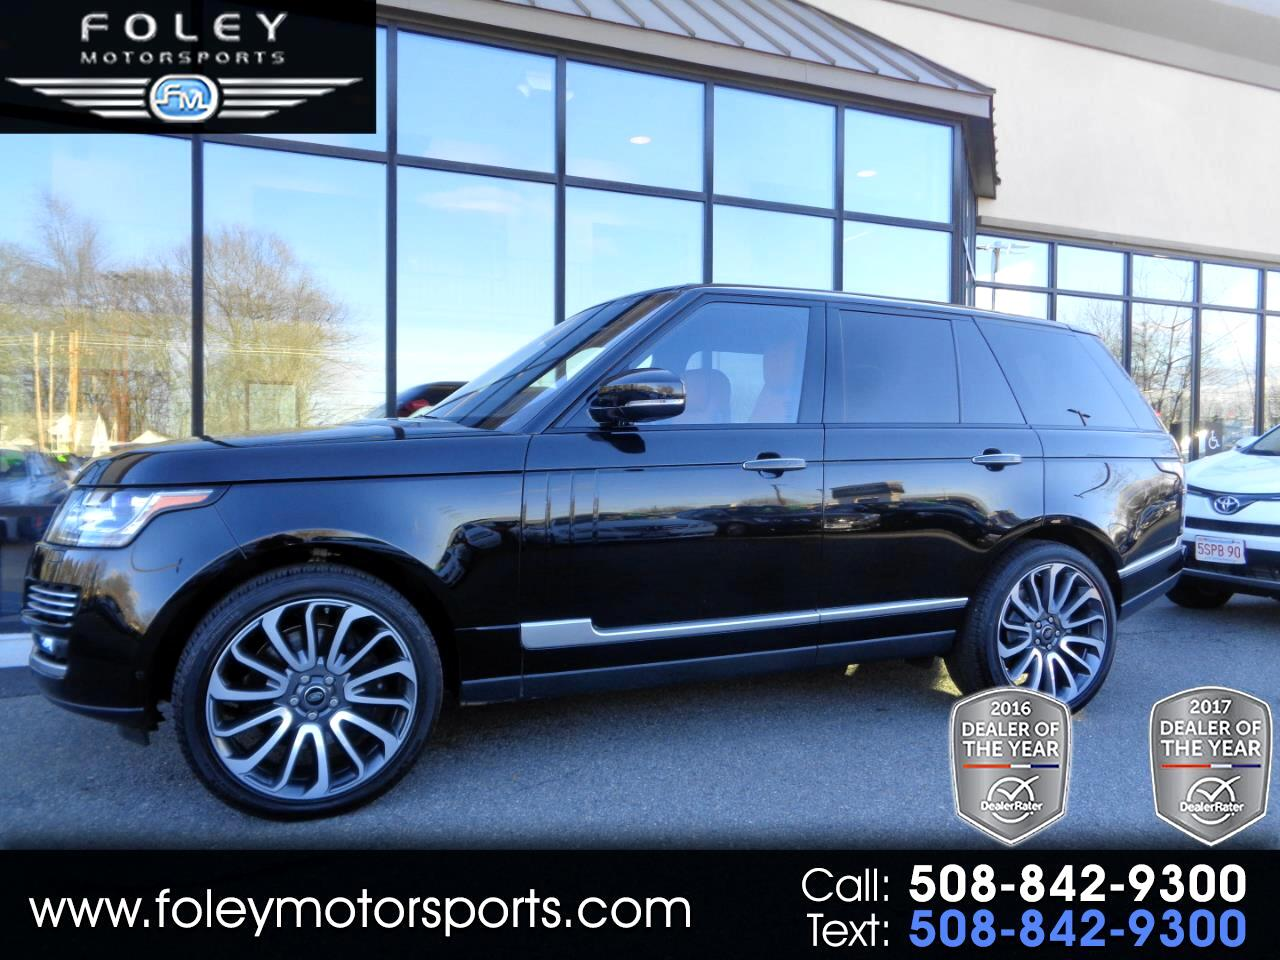 2017 Land Rover Range Rover V8 Supercharged Autobiography SWB